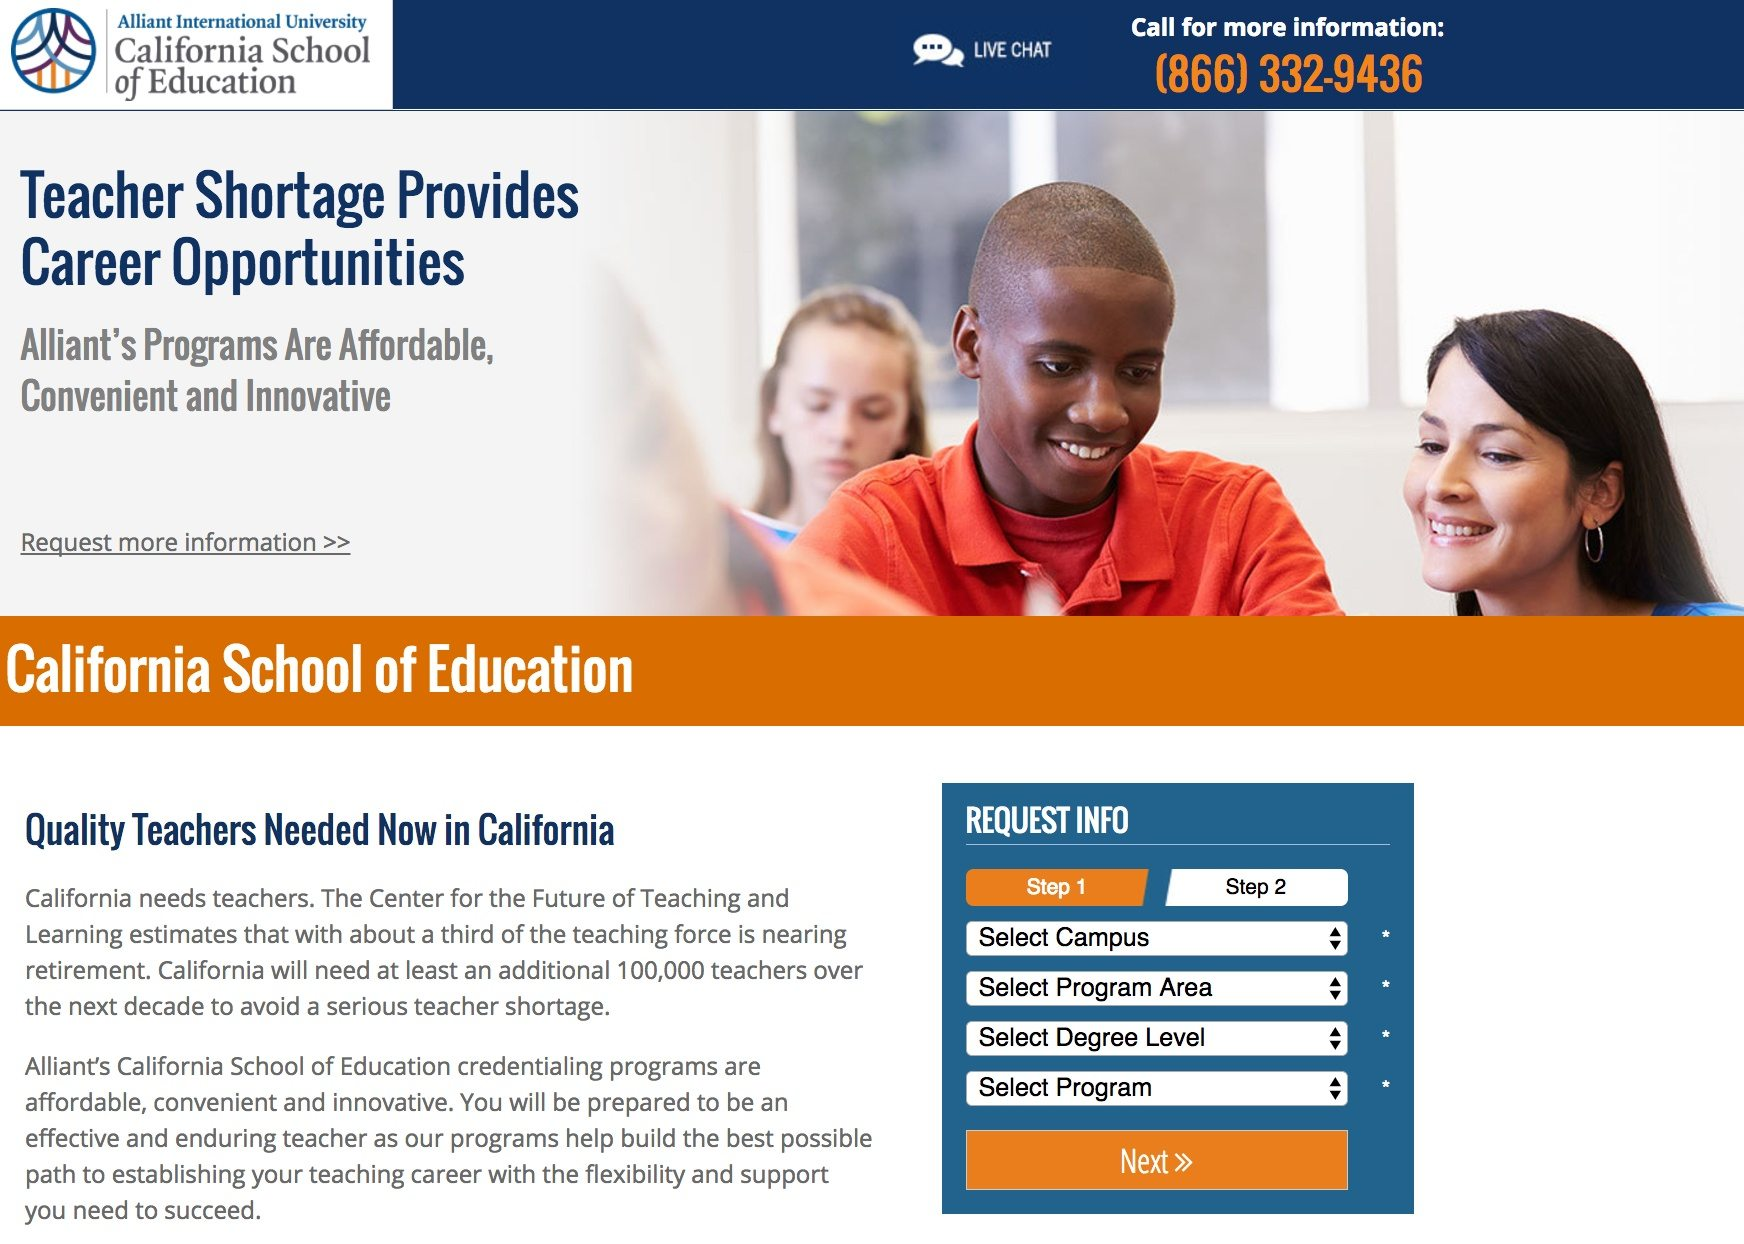 This picture shows marketers how Alliant University uses an education landing page to generate new leads and student sign ups.